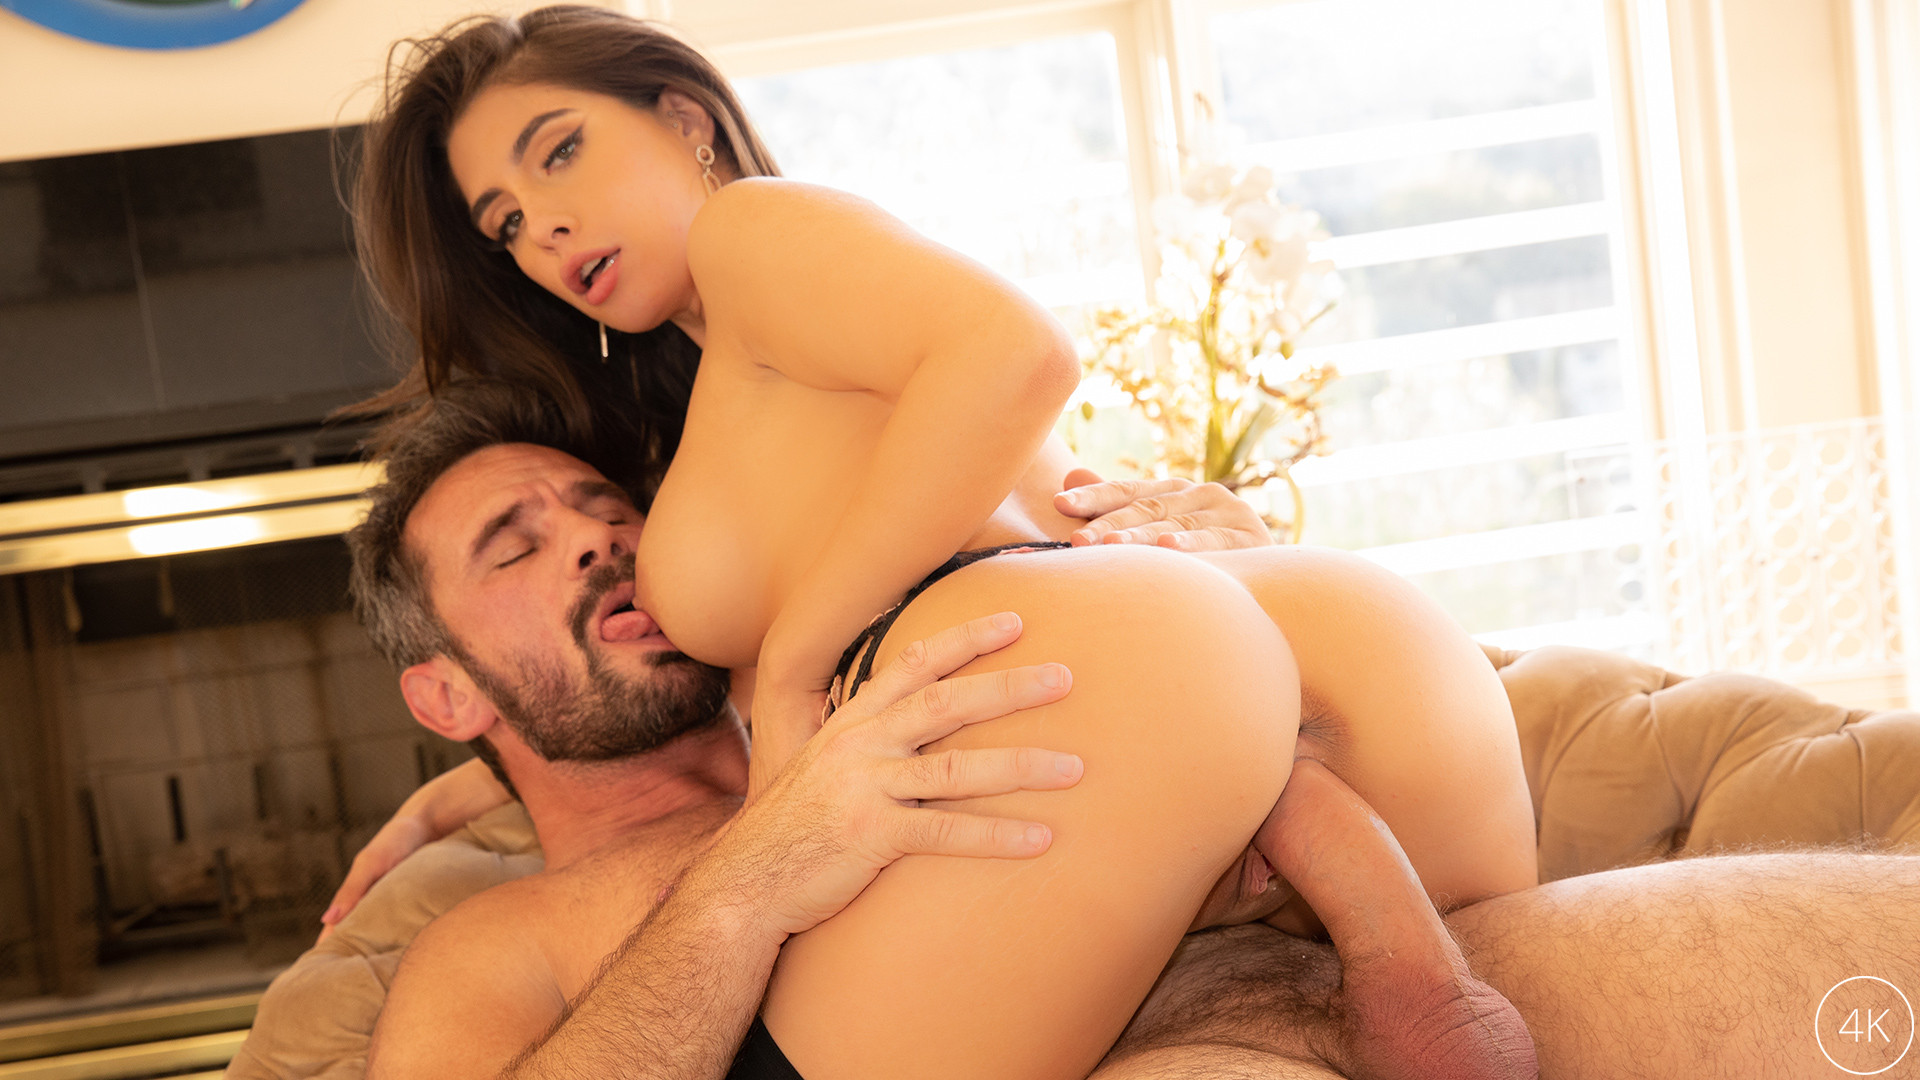 Download JulesJordan.com - Classic Beauty Kait Makes Her Debut Fucking Manuel Ferrara